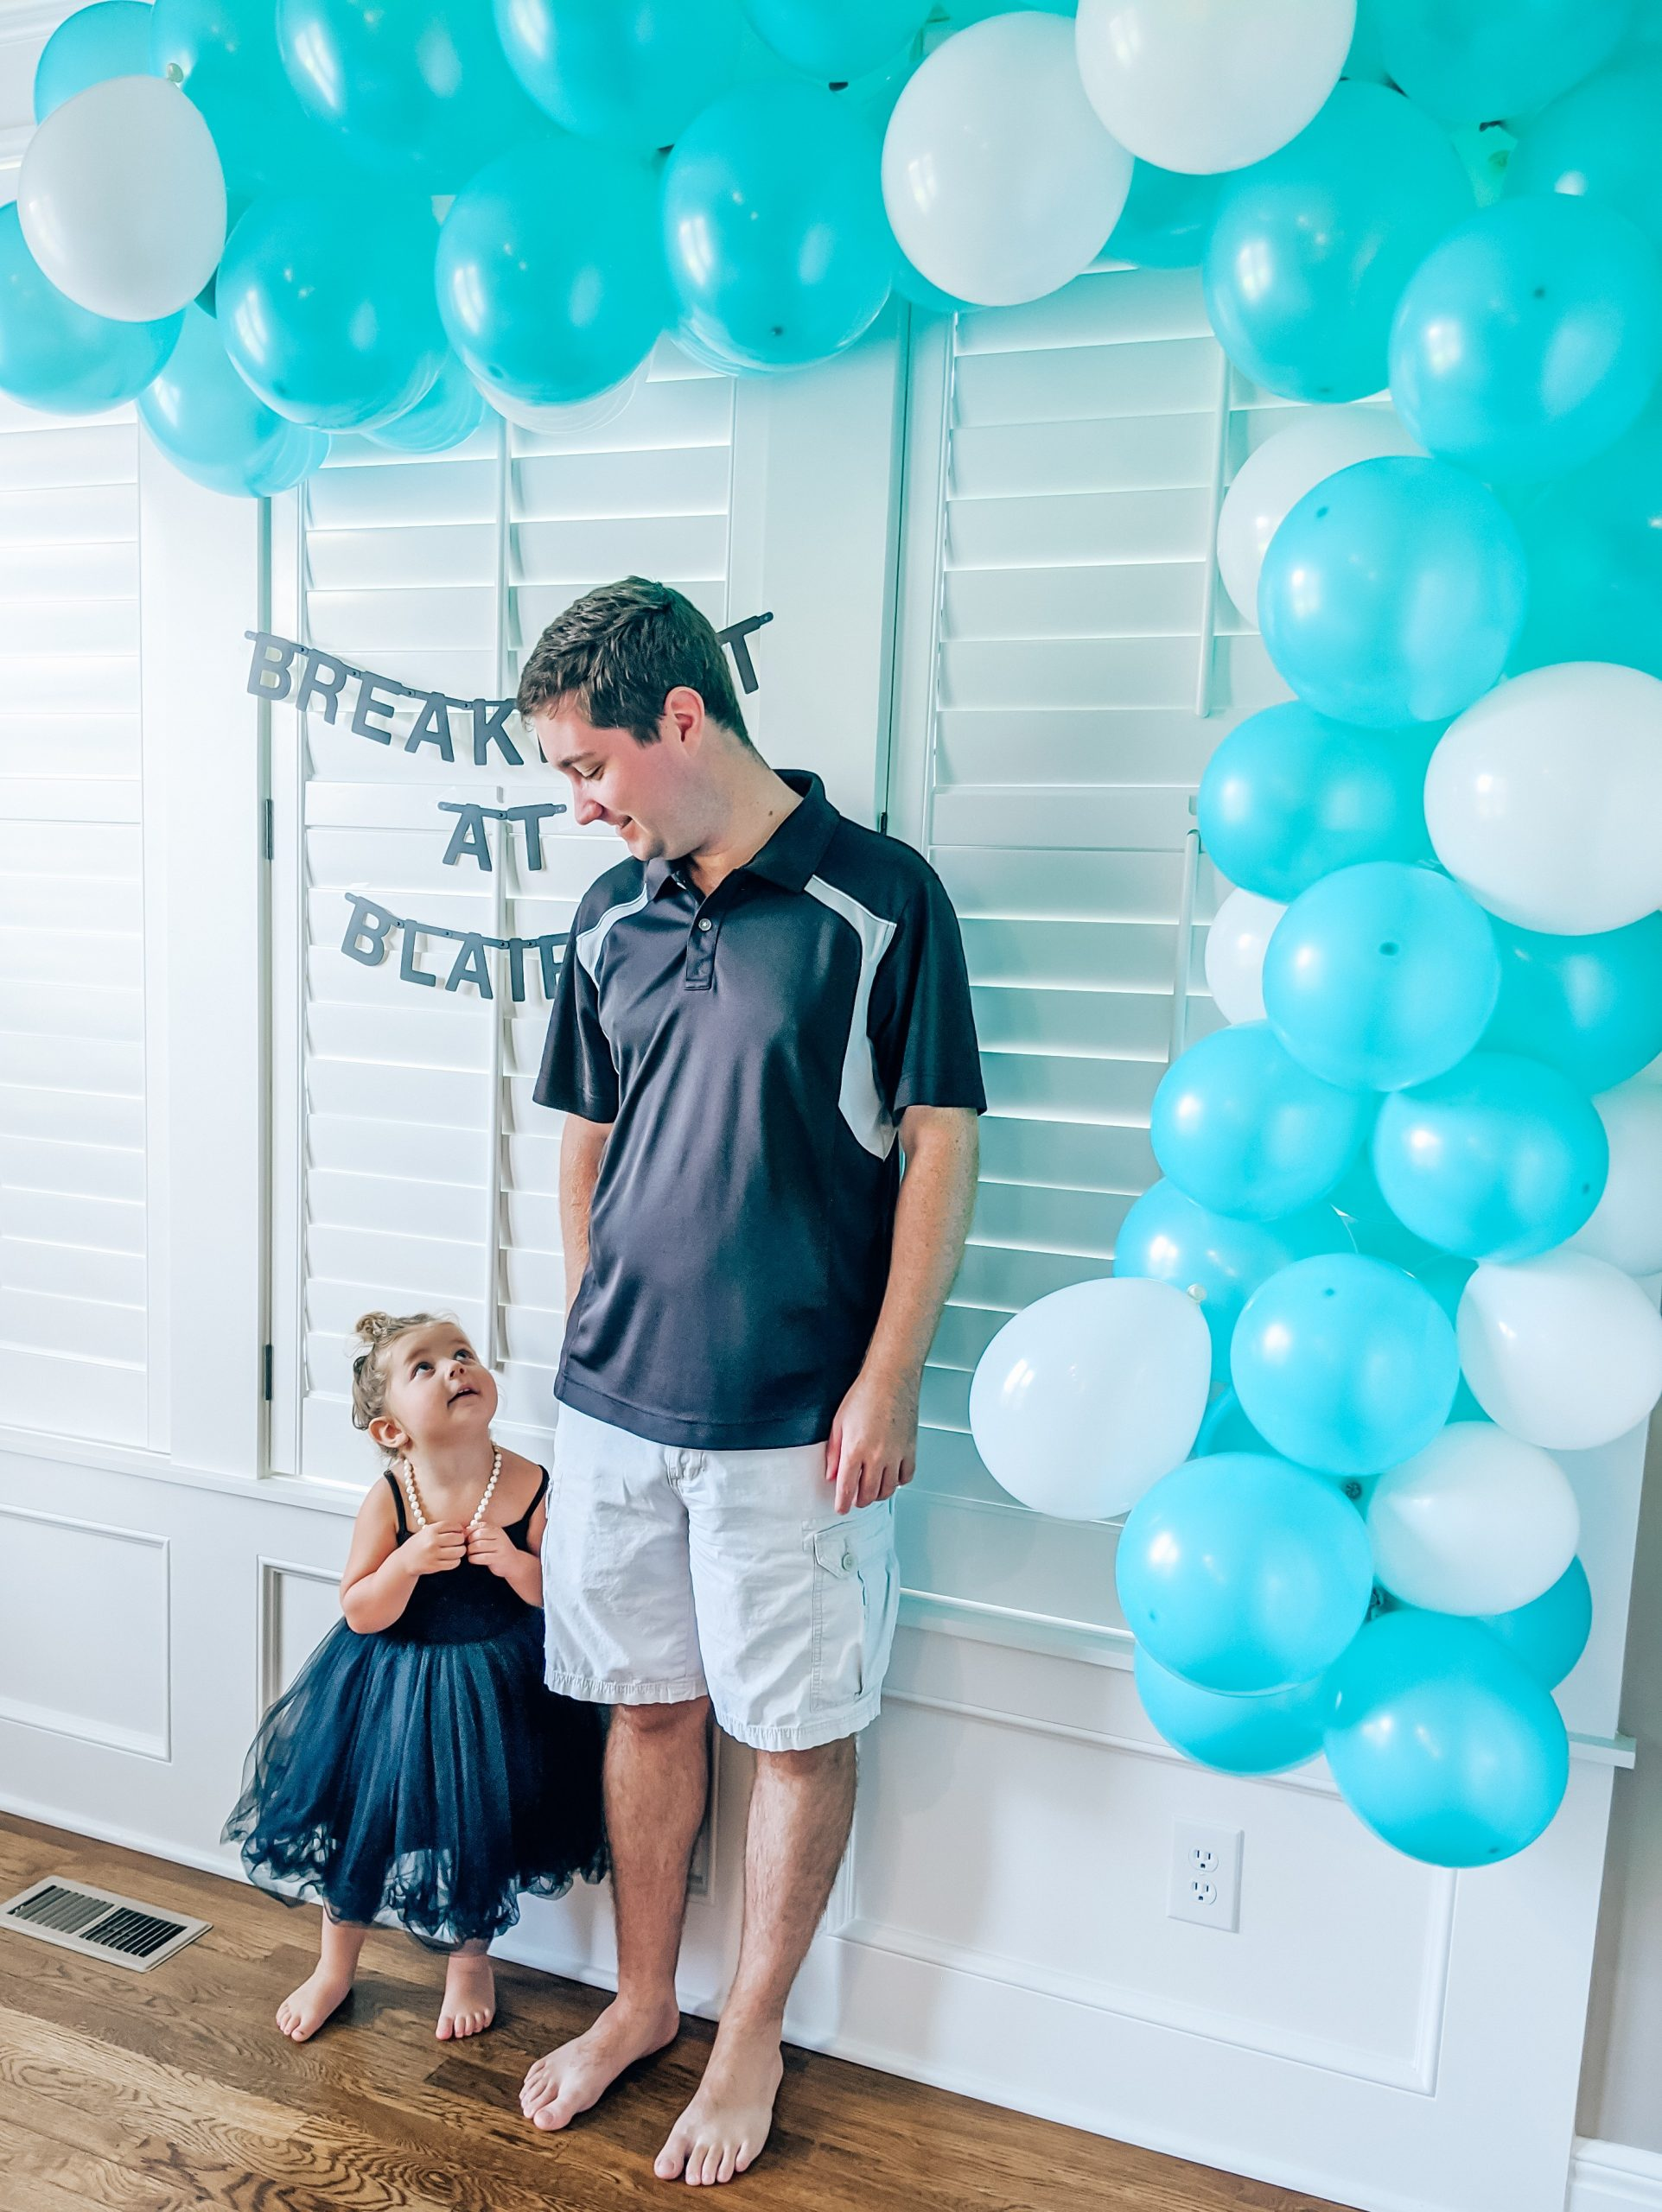 Breakfast at Tiffanys Party - Breakfast at Tiffanys Birthday Party - Audrey Hepburn Party - Girl Birthday Party Ideas - Third Birthday Party #breakfastattiffanys #audreyhepburn #partyideas #birthdayparty